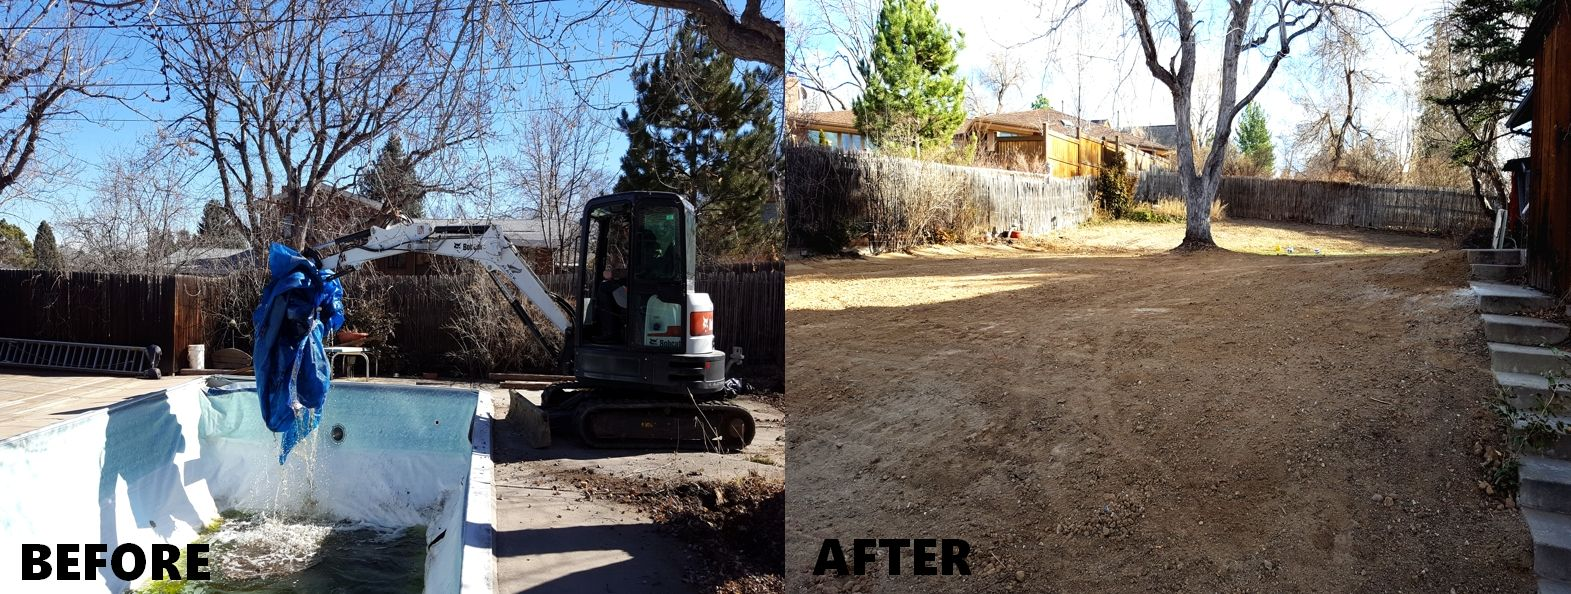 Mack Land LLC - Wheat Ridge, CO Pool Removal